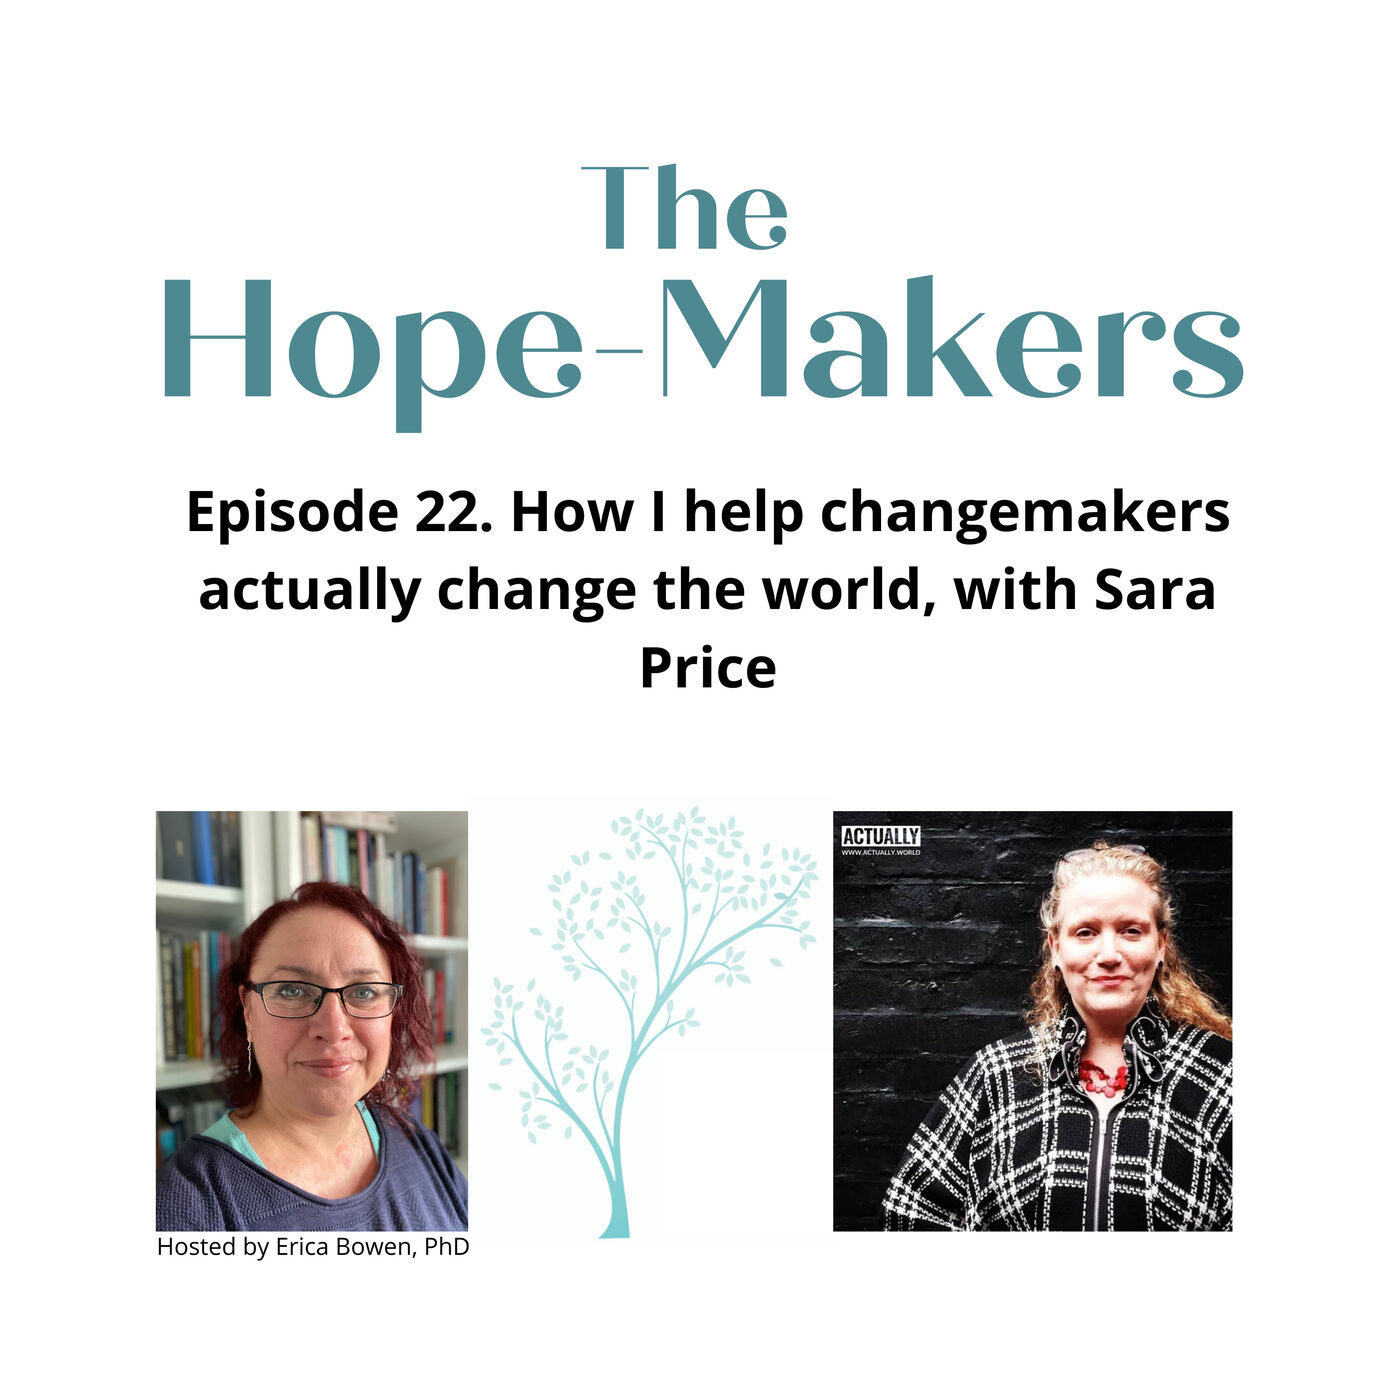 Episode 22: How I help changemakers actually change the world, with Sara Price